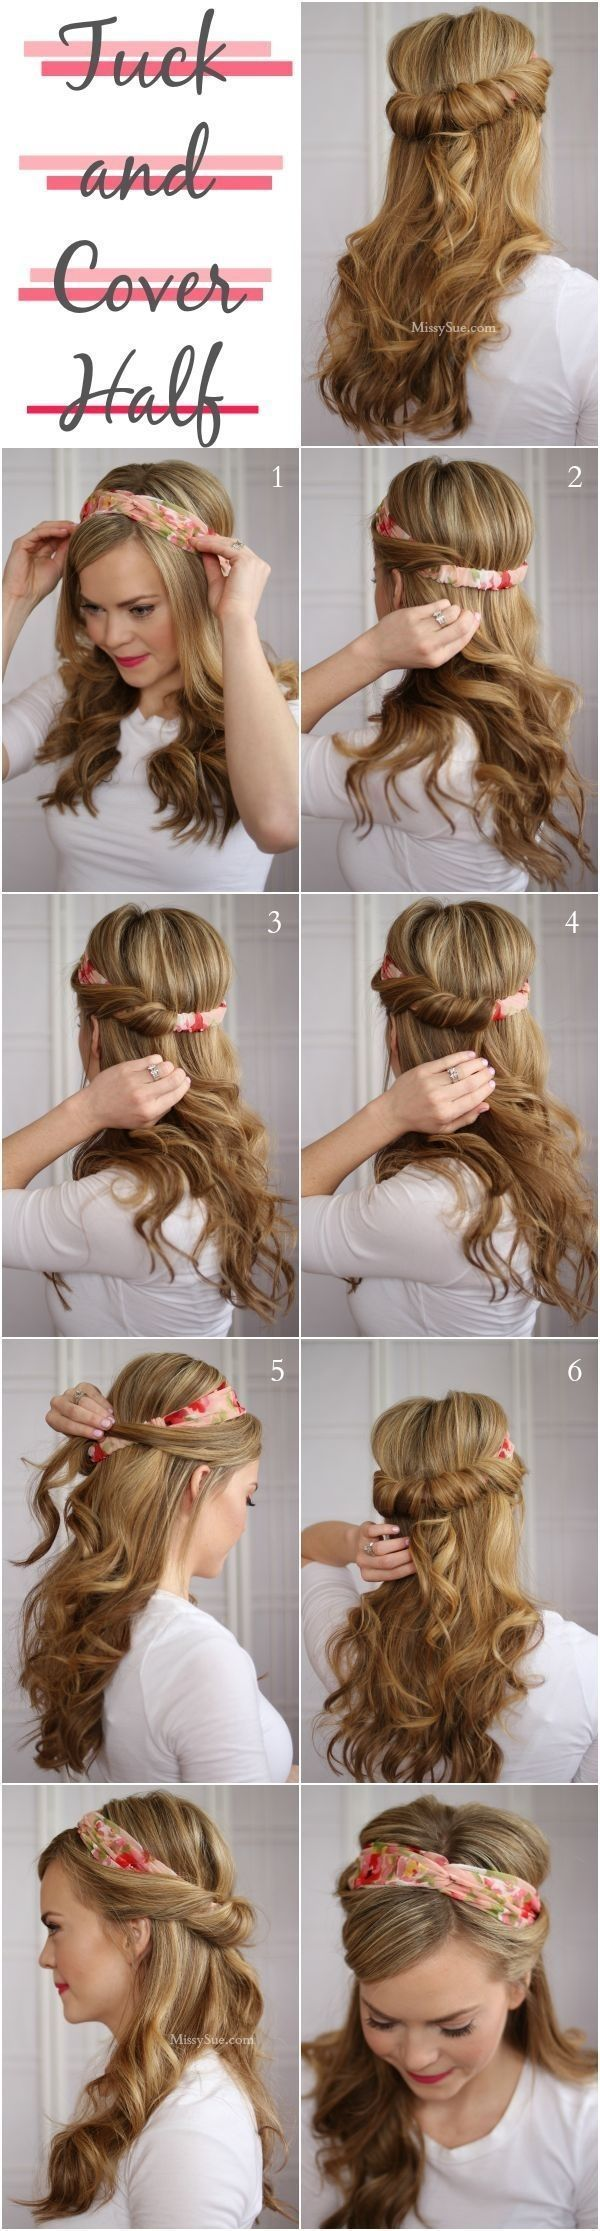 best simple hairstyles for medium hair images on pinterest